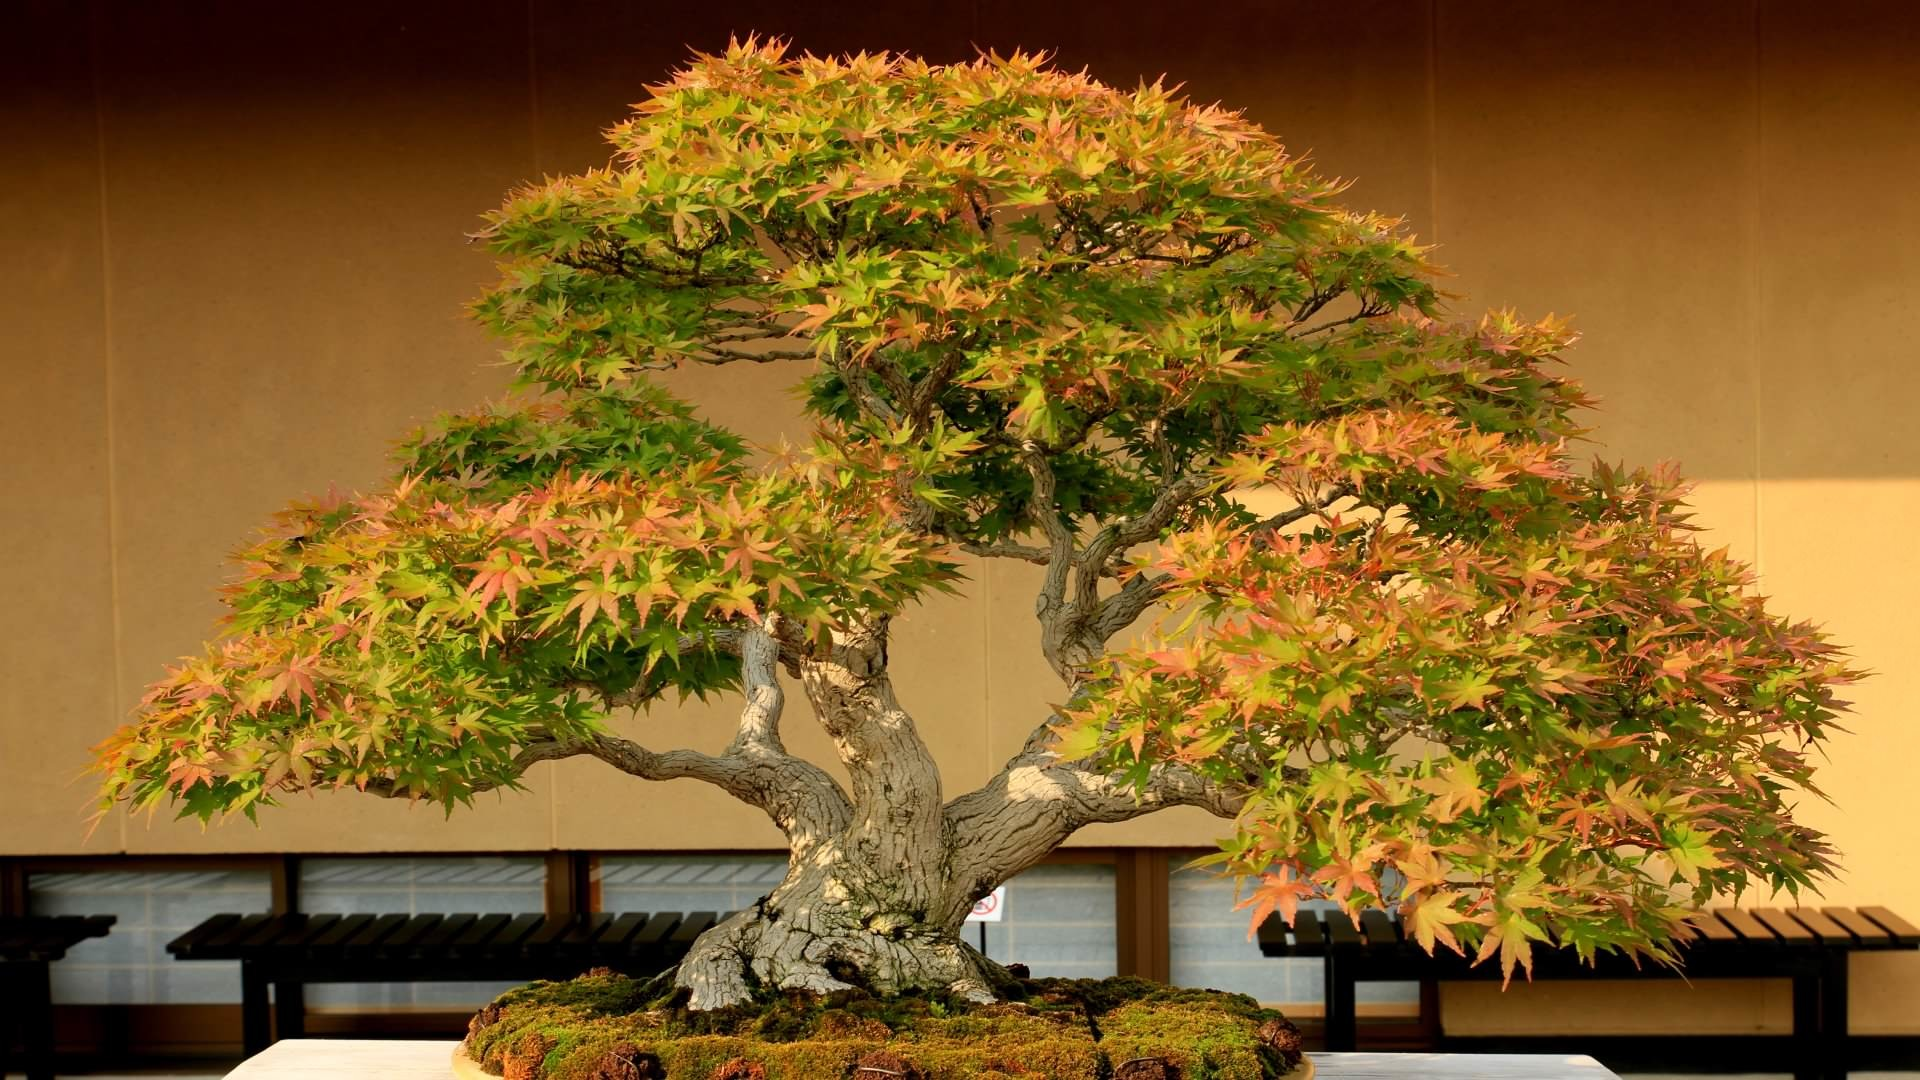 1920x1080 bonsai tree grown in container hd wallpapers [1920*1080] ...